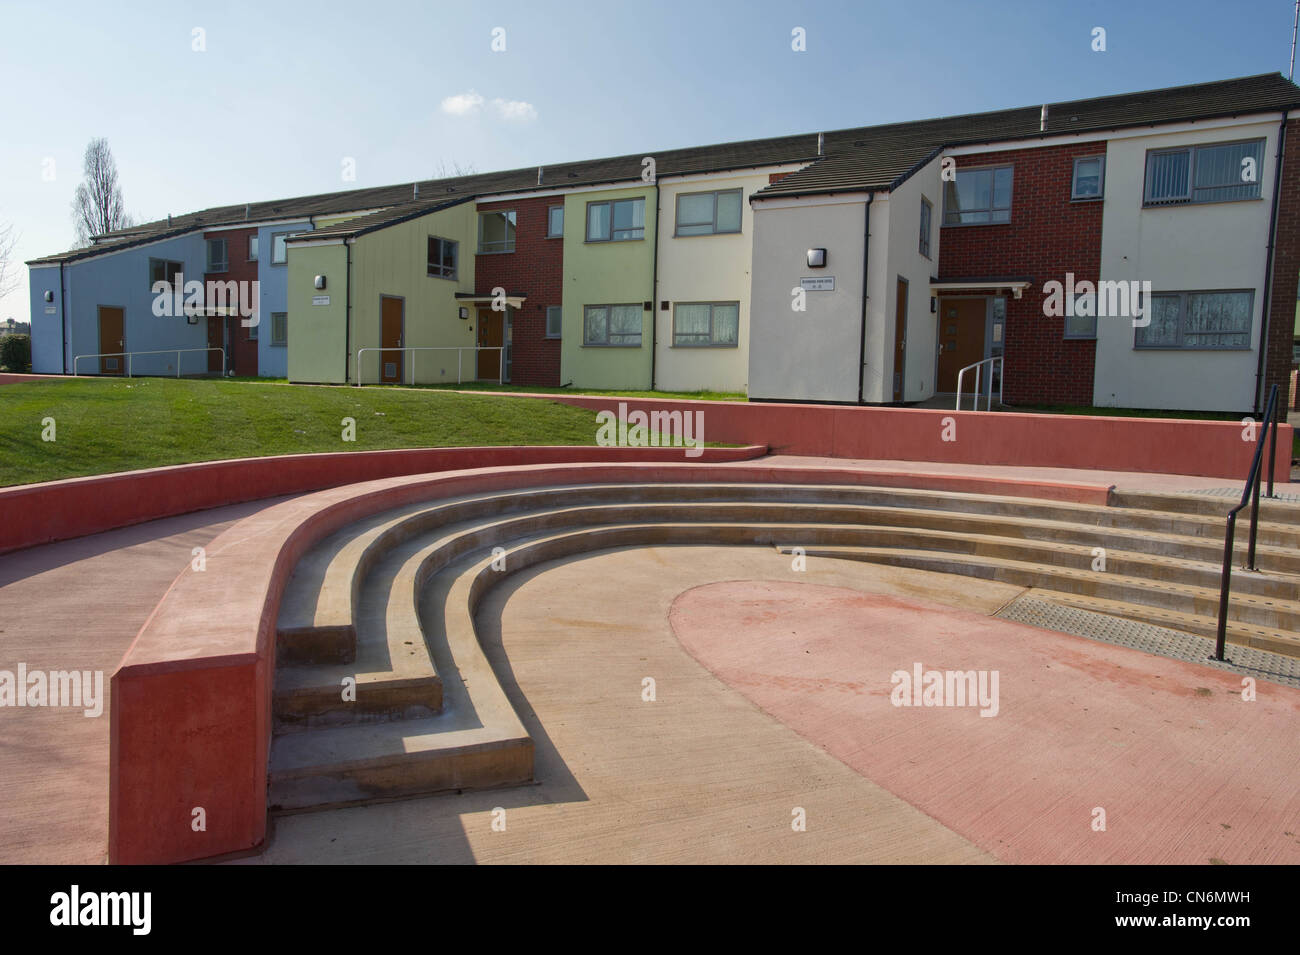 Public space on a new build social housing project - Stock Image